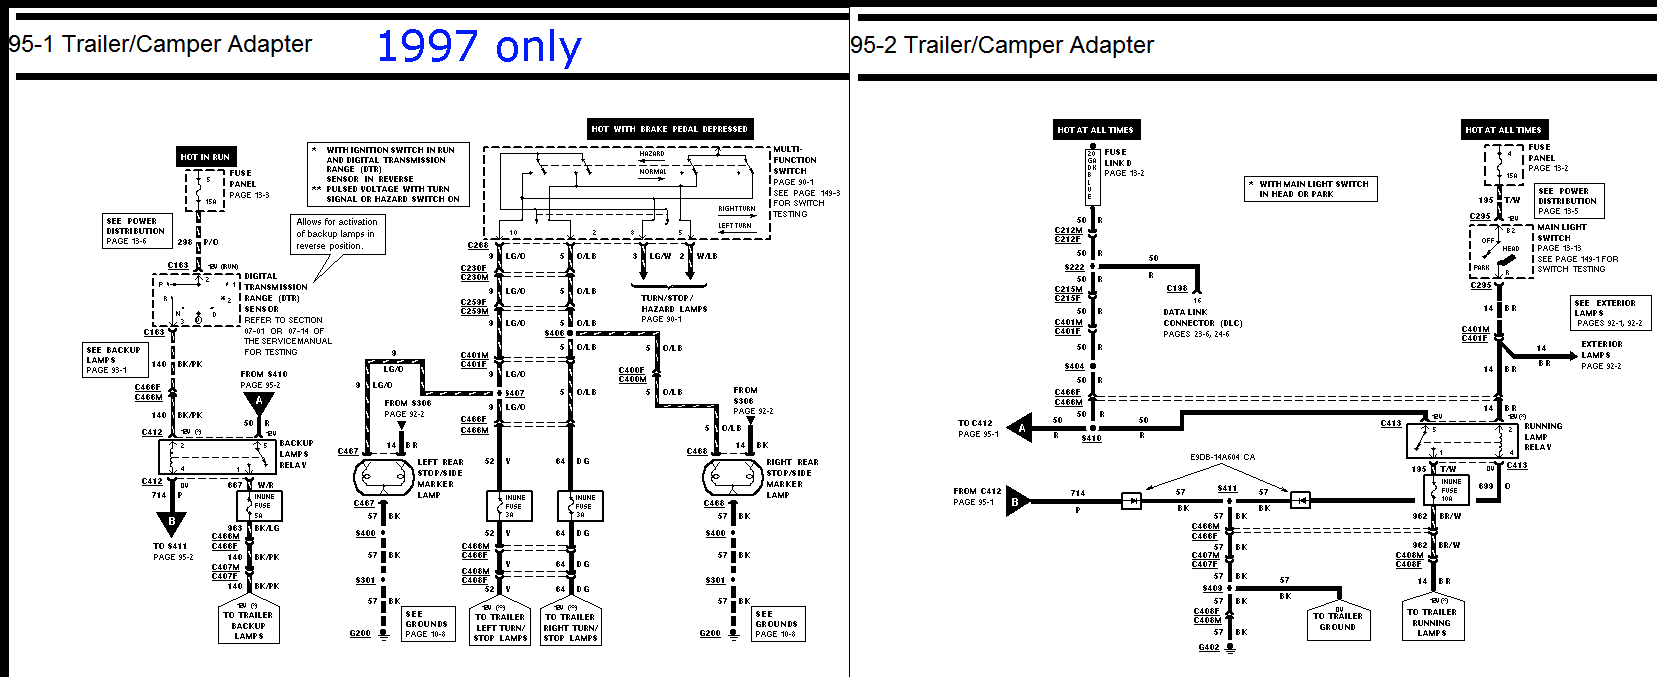 1996 Ford F 350 Wiring Diagram - Wiring Diagrams Thumbs - 1996 Ford F350 Trailer Wiring Diagram